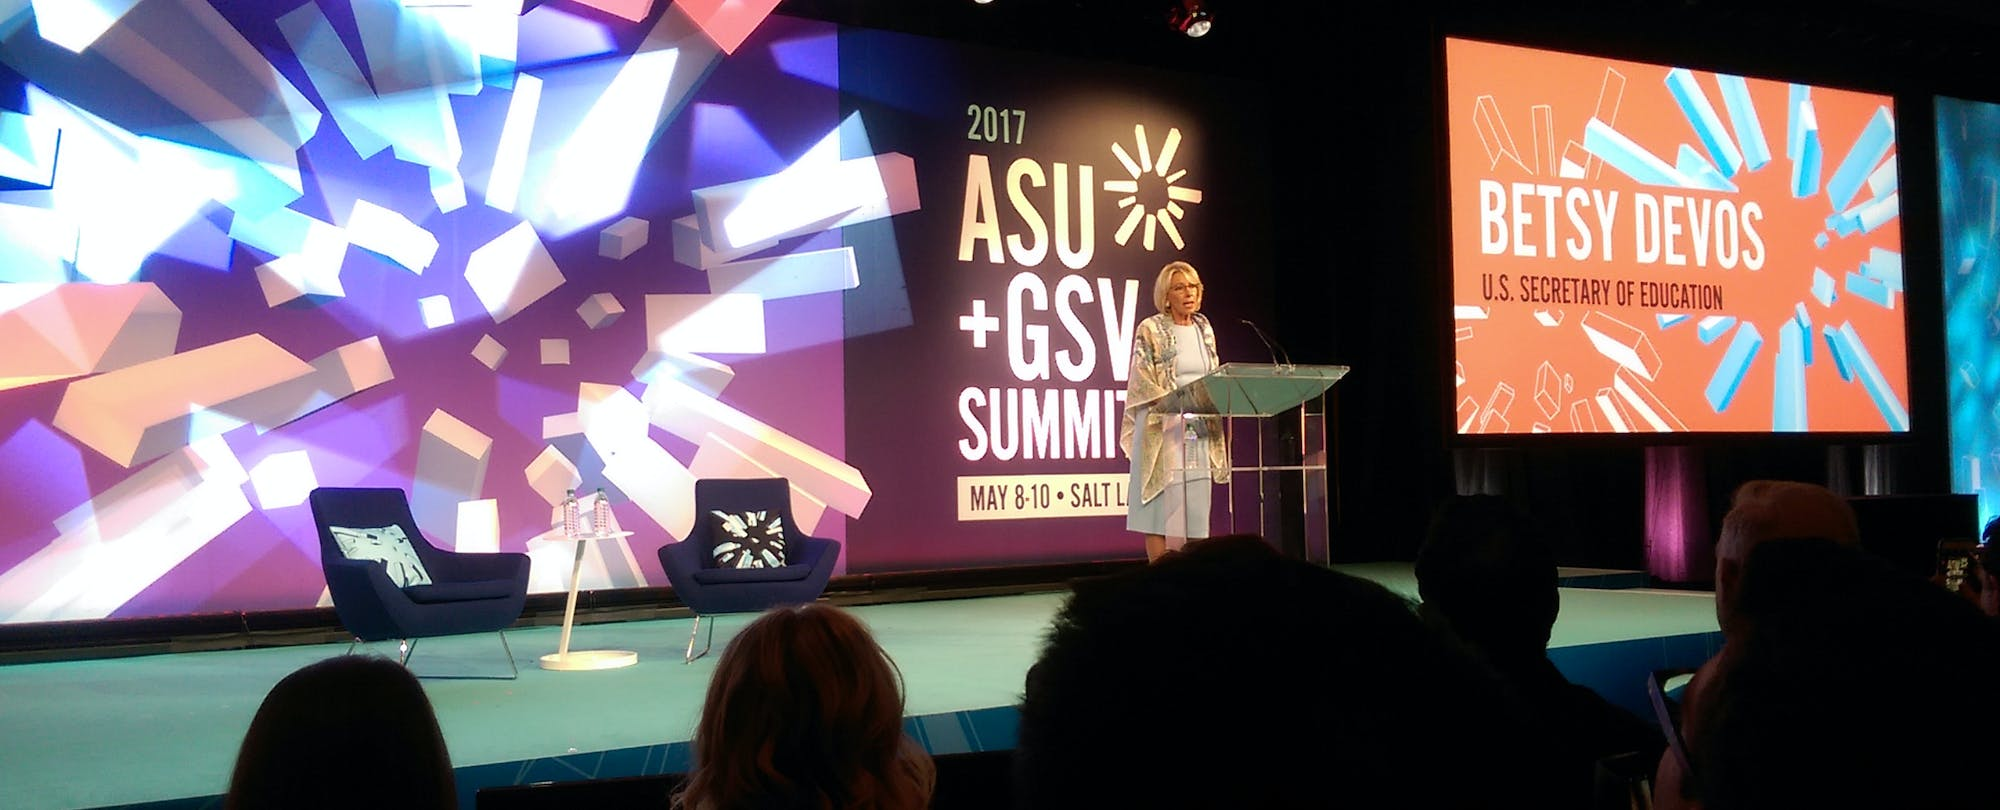 What Betsy DeVos Offered (or Didn't) During Her ASU+GSV Summit Keynote